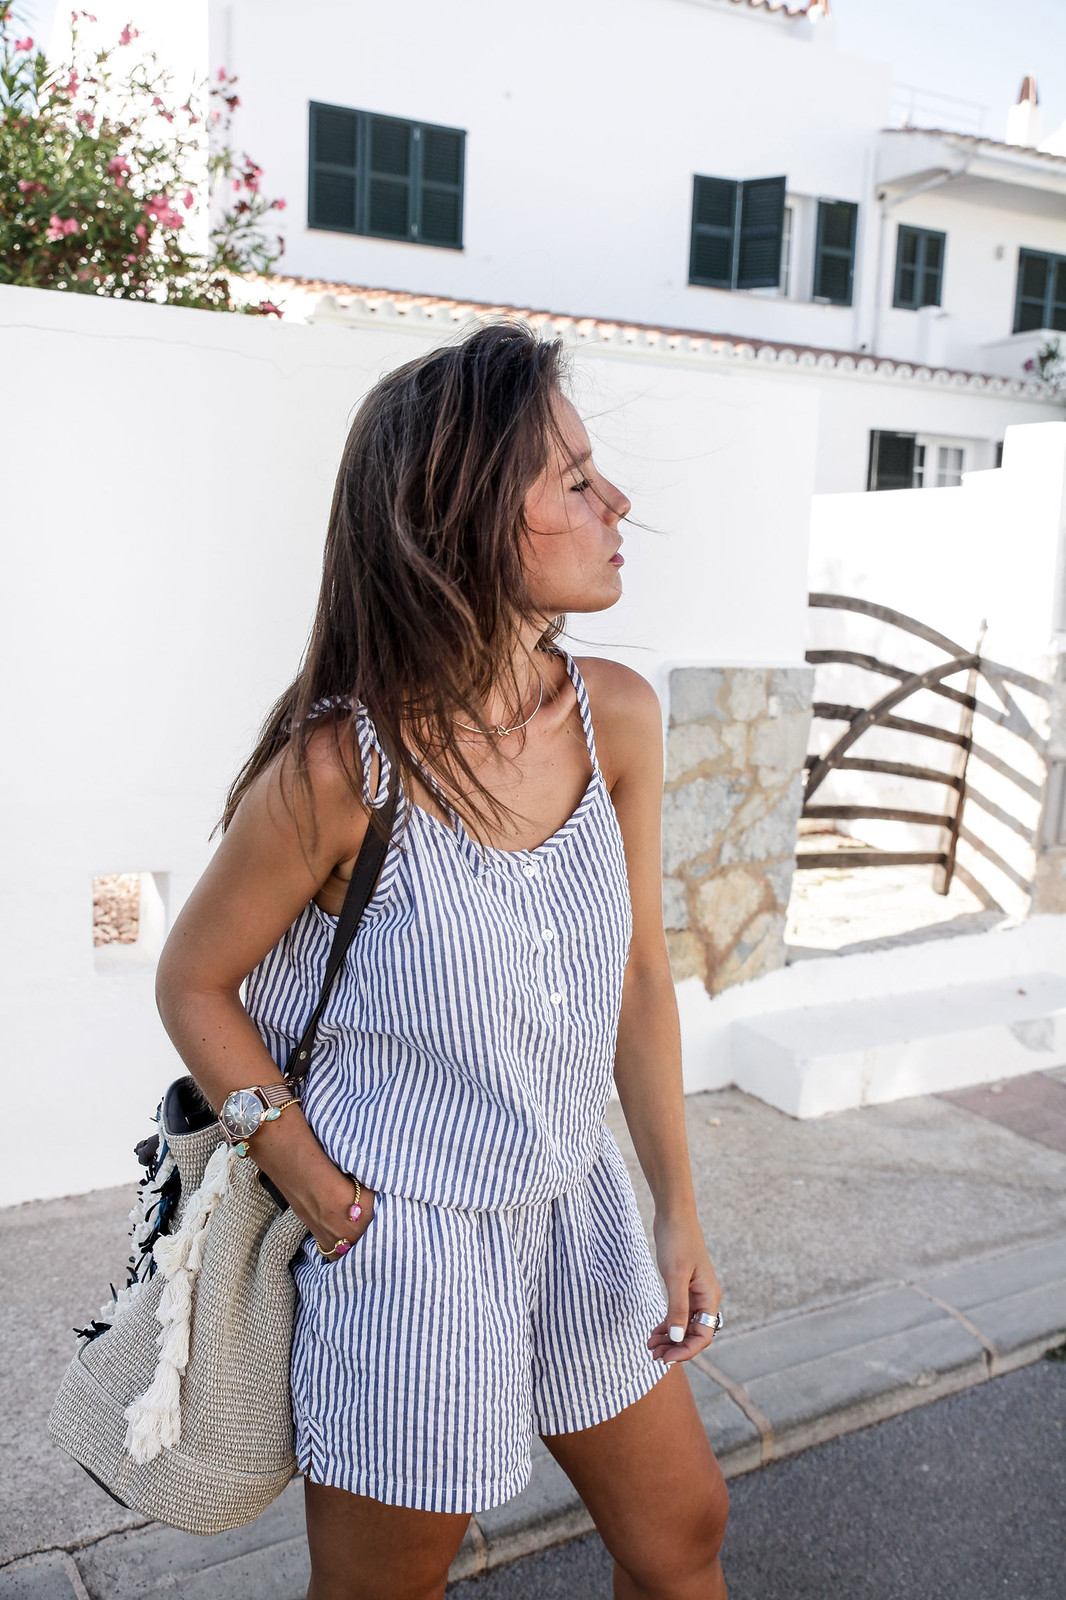 07_Mono_rayas_marineras_casual_outfit_theguestgirl_bolso_boho_via_email_pieces_style_the_guest_girl_influencer_menorca_minorca_barcelona_spain_fashion_blogger